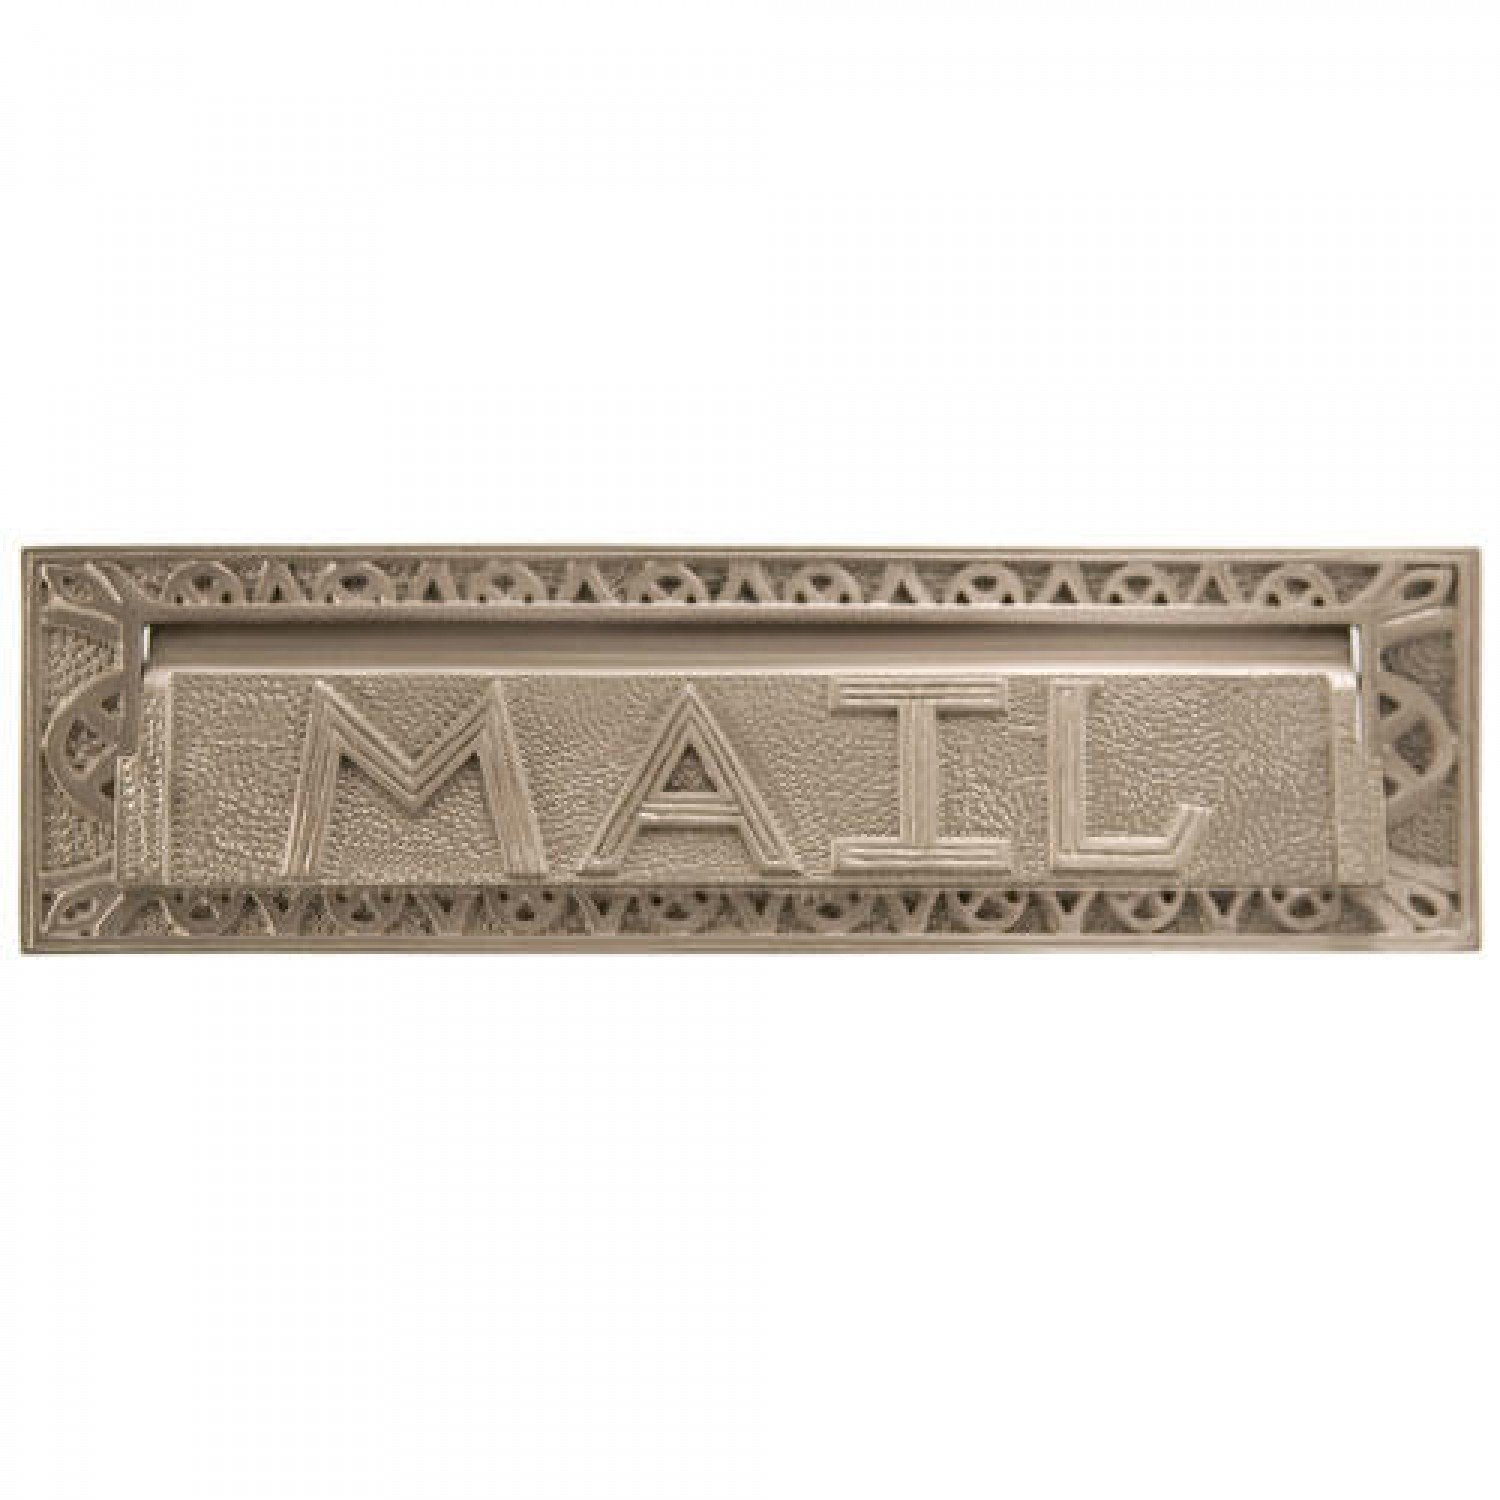 "Naiture 13"" Classic Heavy Duty ""mail"" Letter Slot in Brushed Nickel Finish"